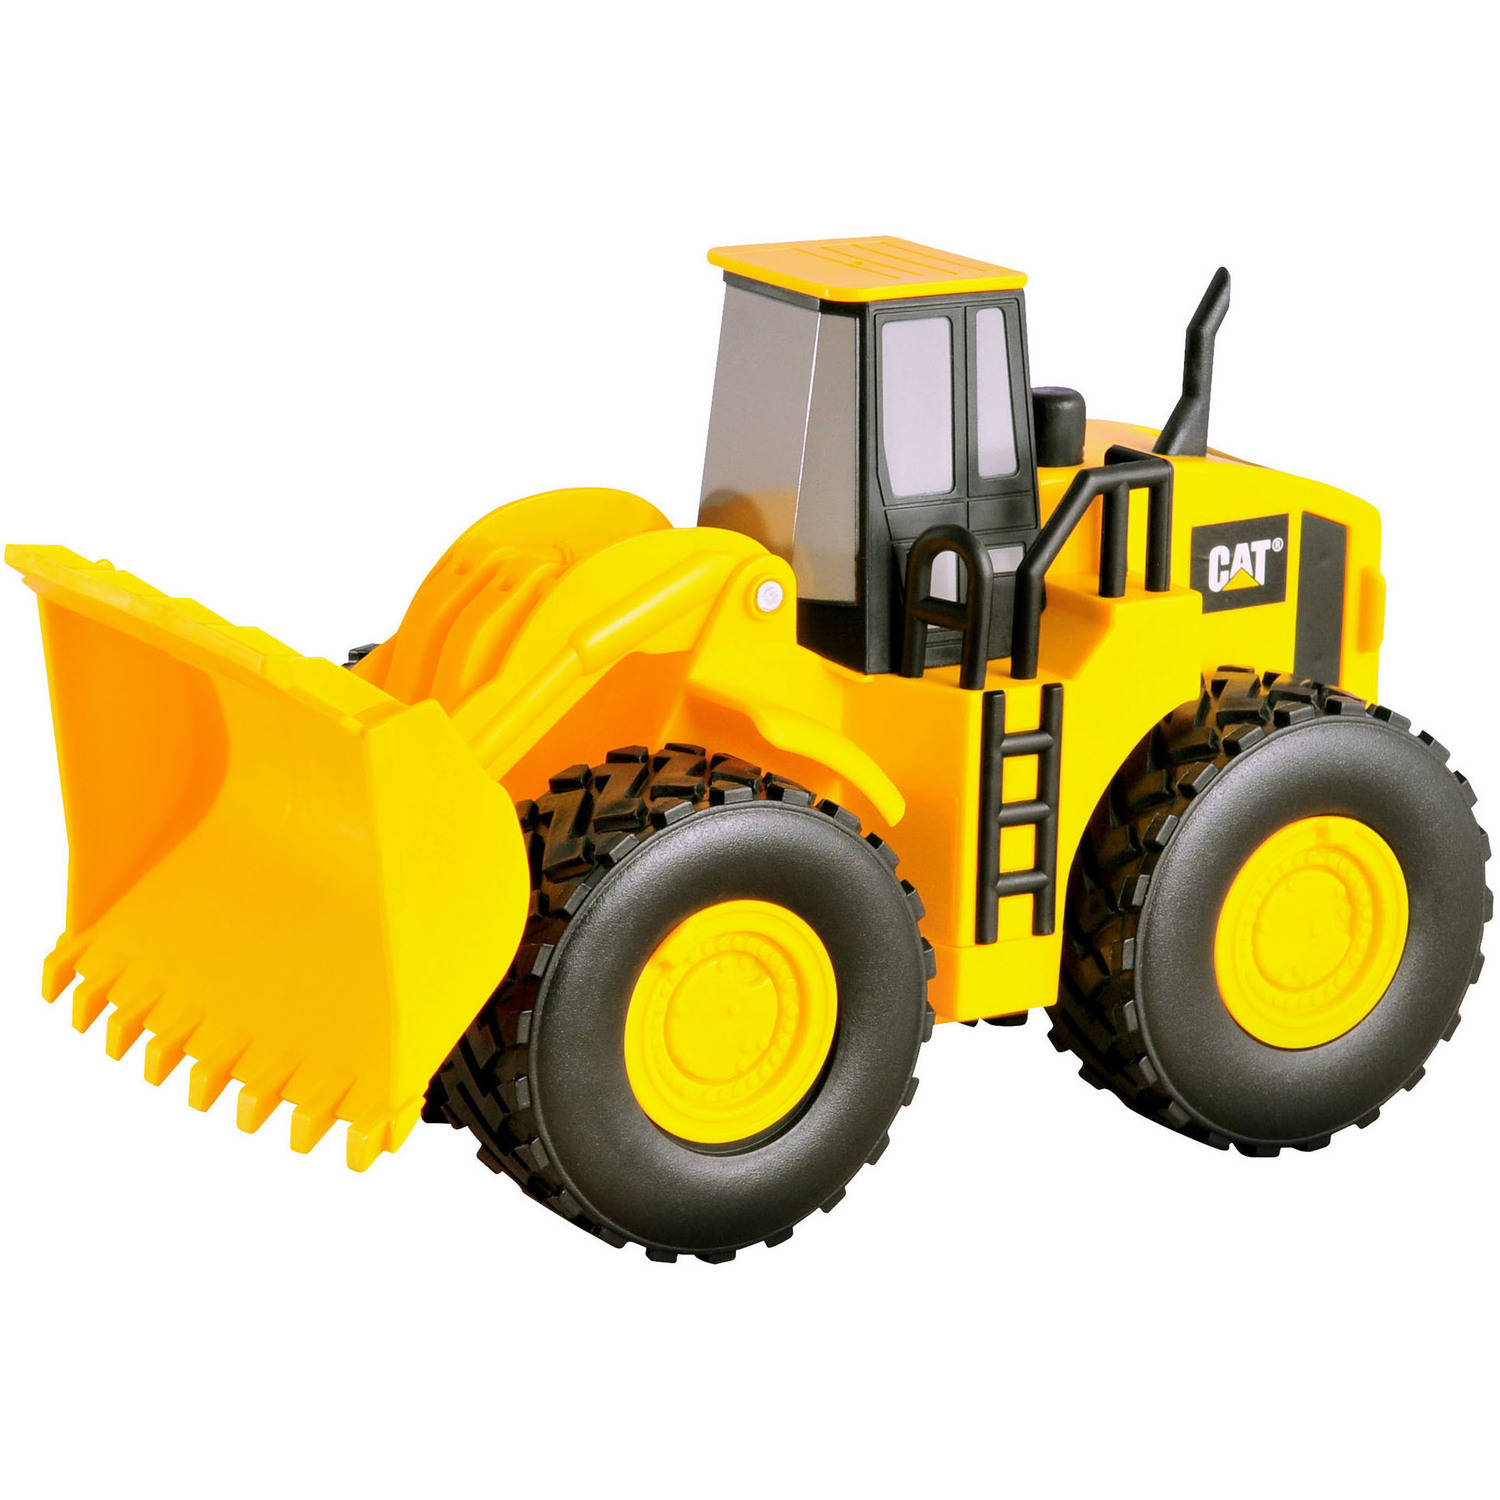 Caterpillar Rev It Up Wheel Loader